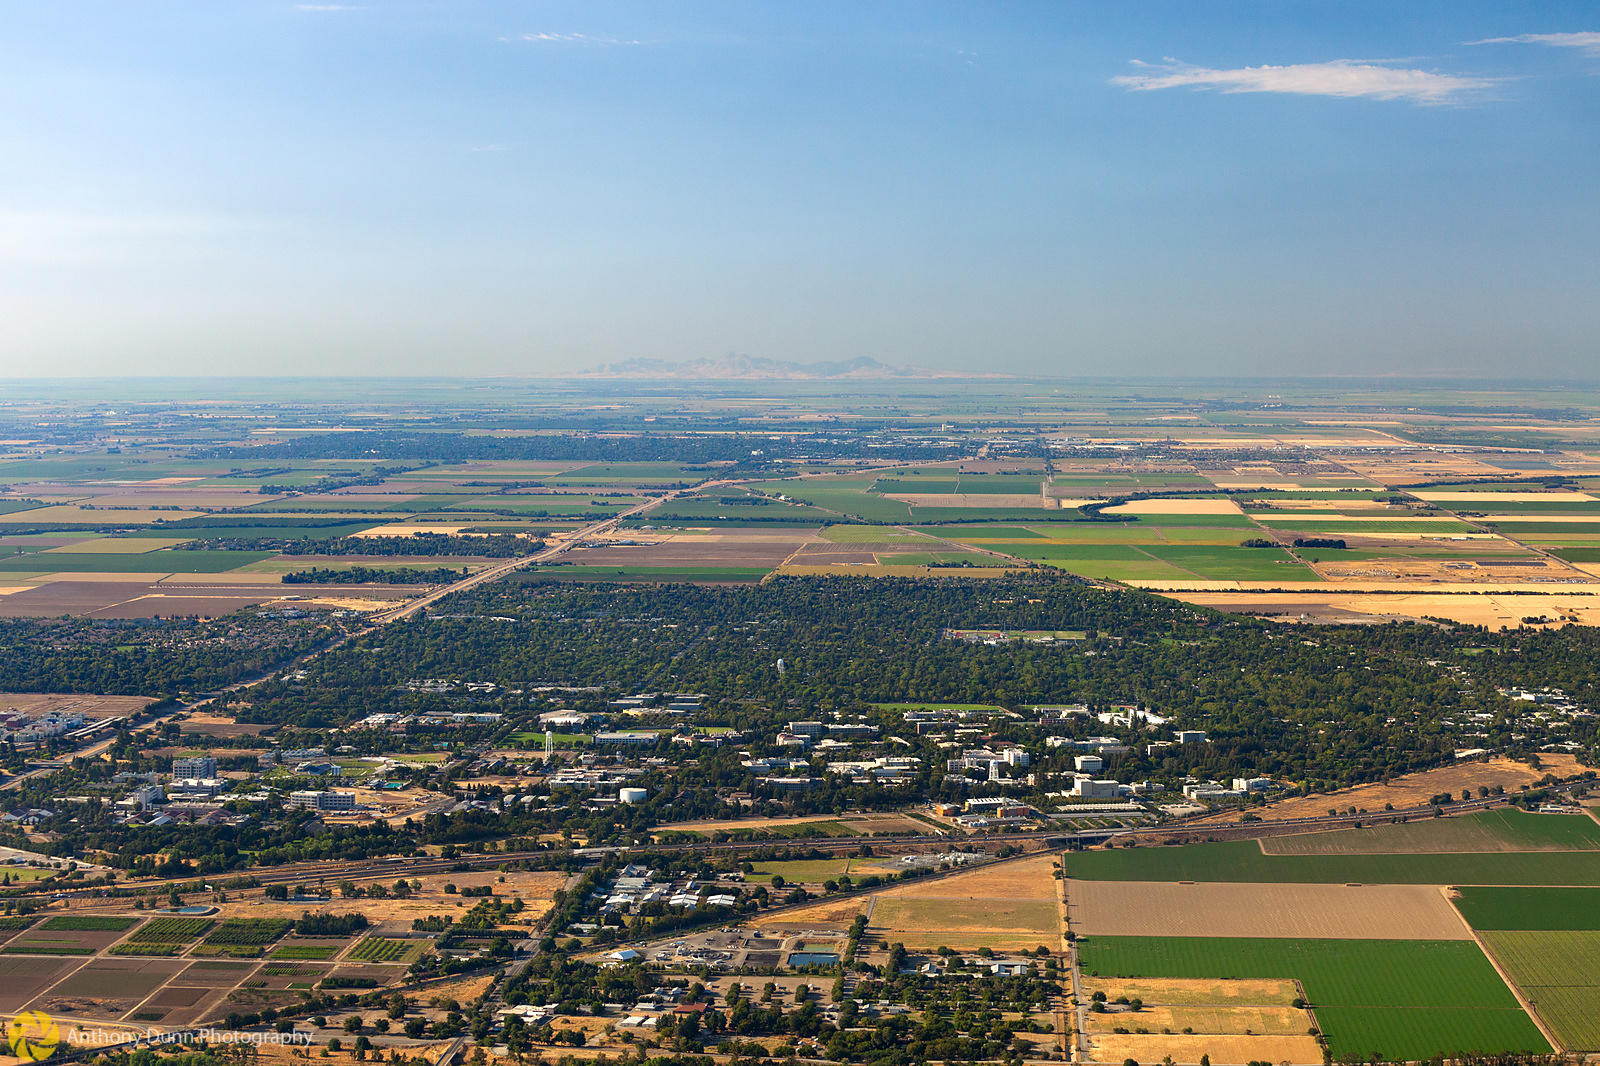 Aerial View of the City of Davis